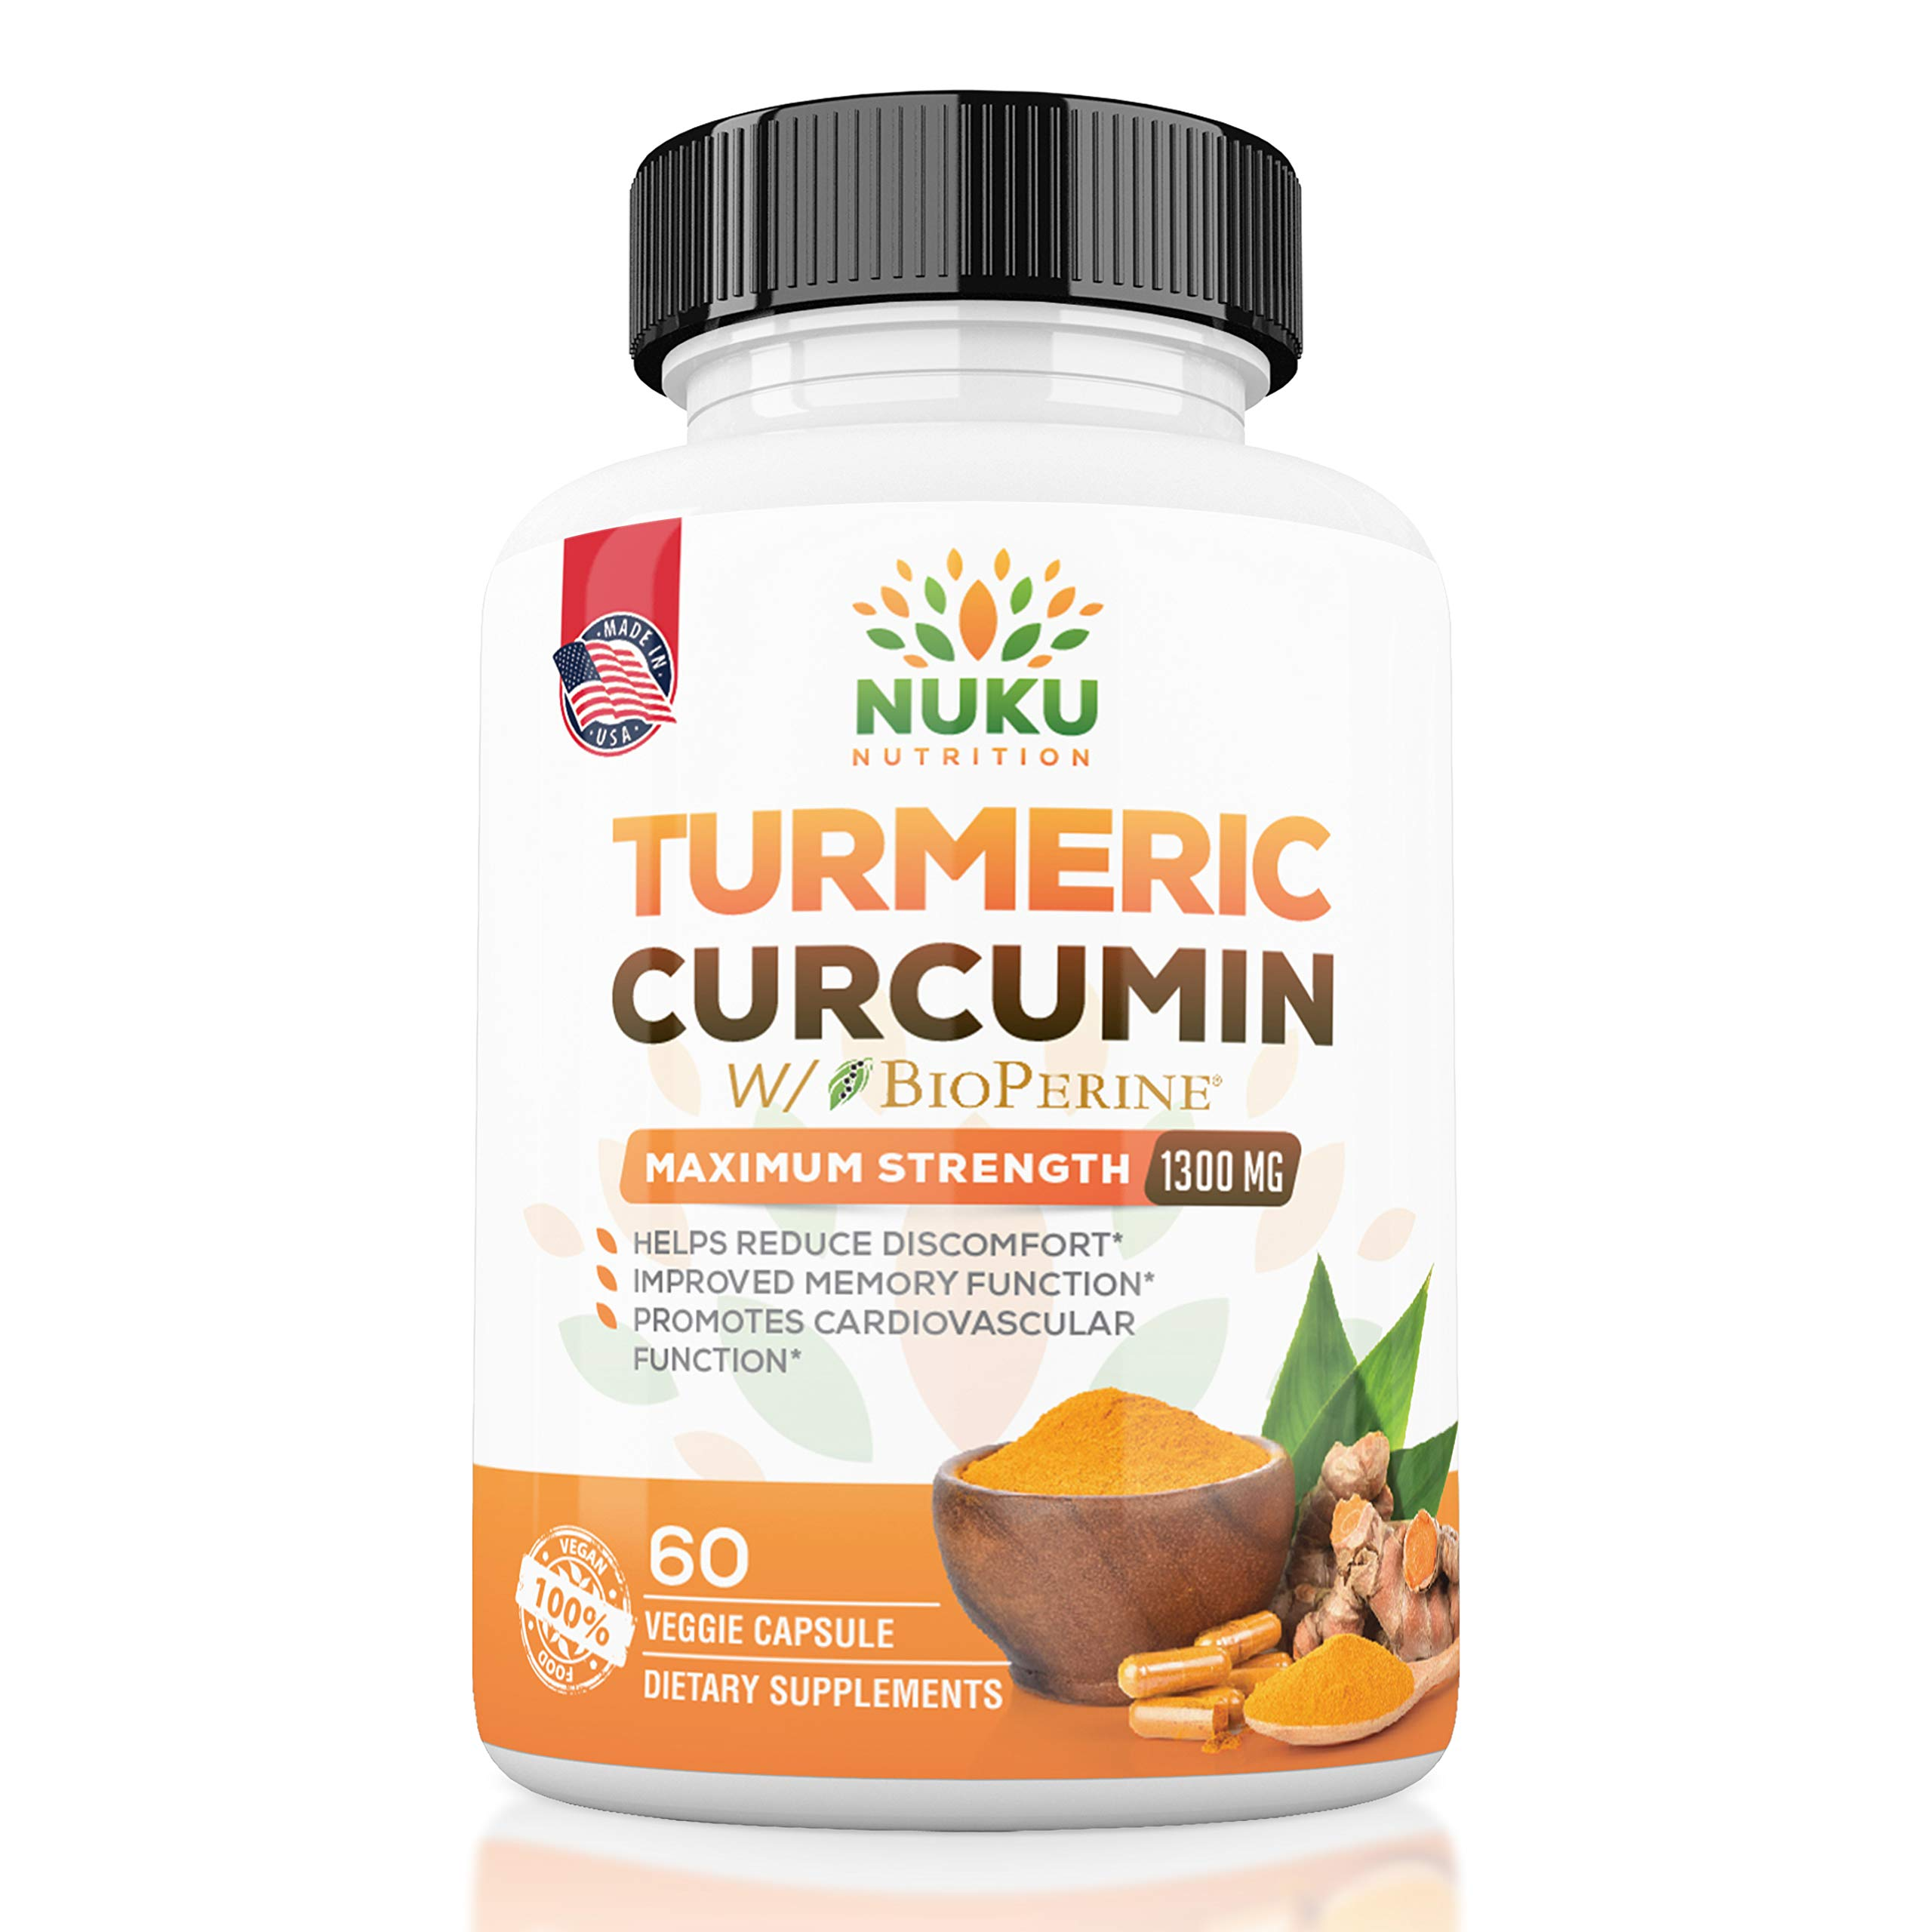 Lowest Price | Turmeric Curcumin with BioPerine Maximum Strength 1300mg - Joint Support, Pain Relief, Antioxidant & Anti-Aging Supplement. Non-GMO, Made in USA with 95% Curcuminoids. | Nuku Nutrition by Nuku Nutrition